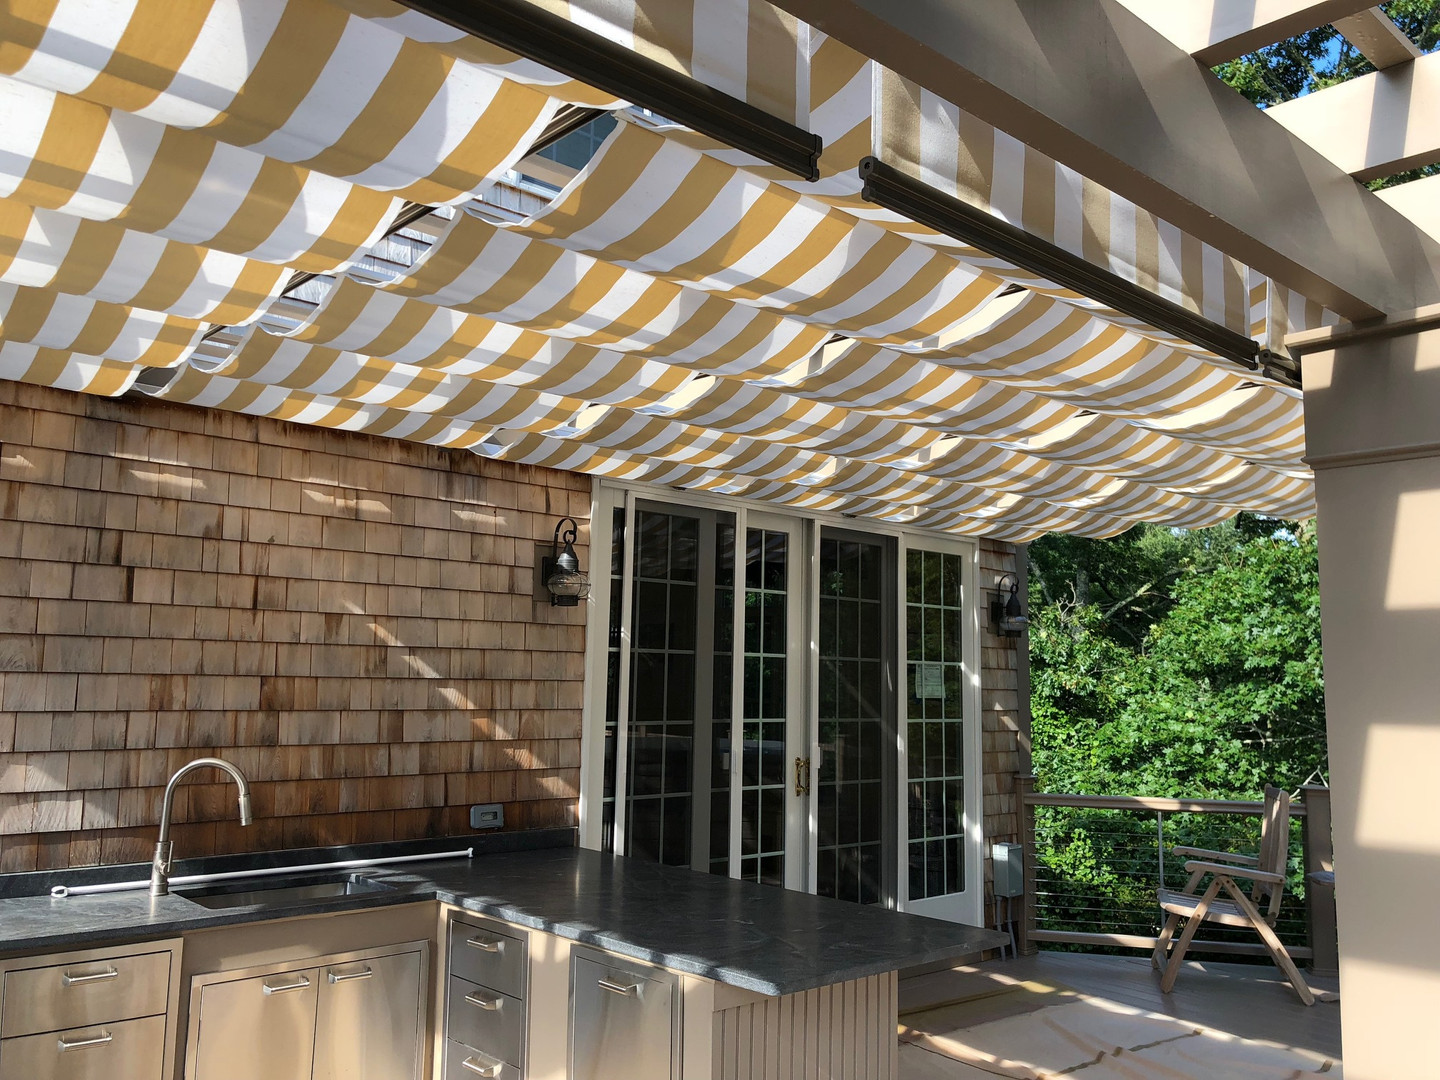 Yellow and White Canvas Awning